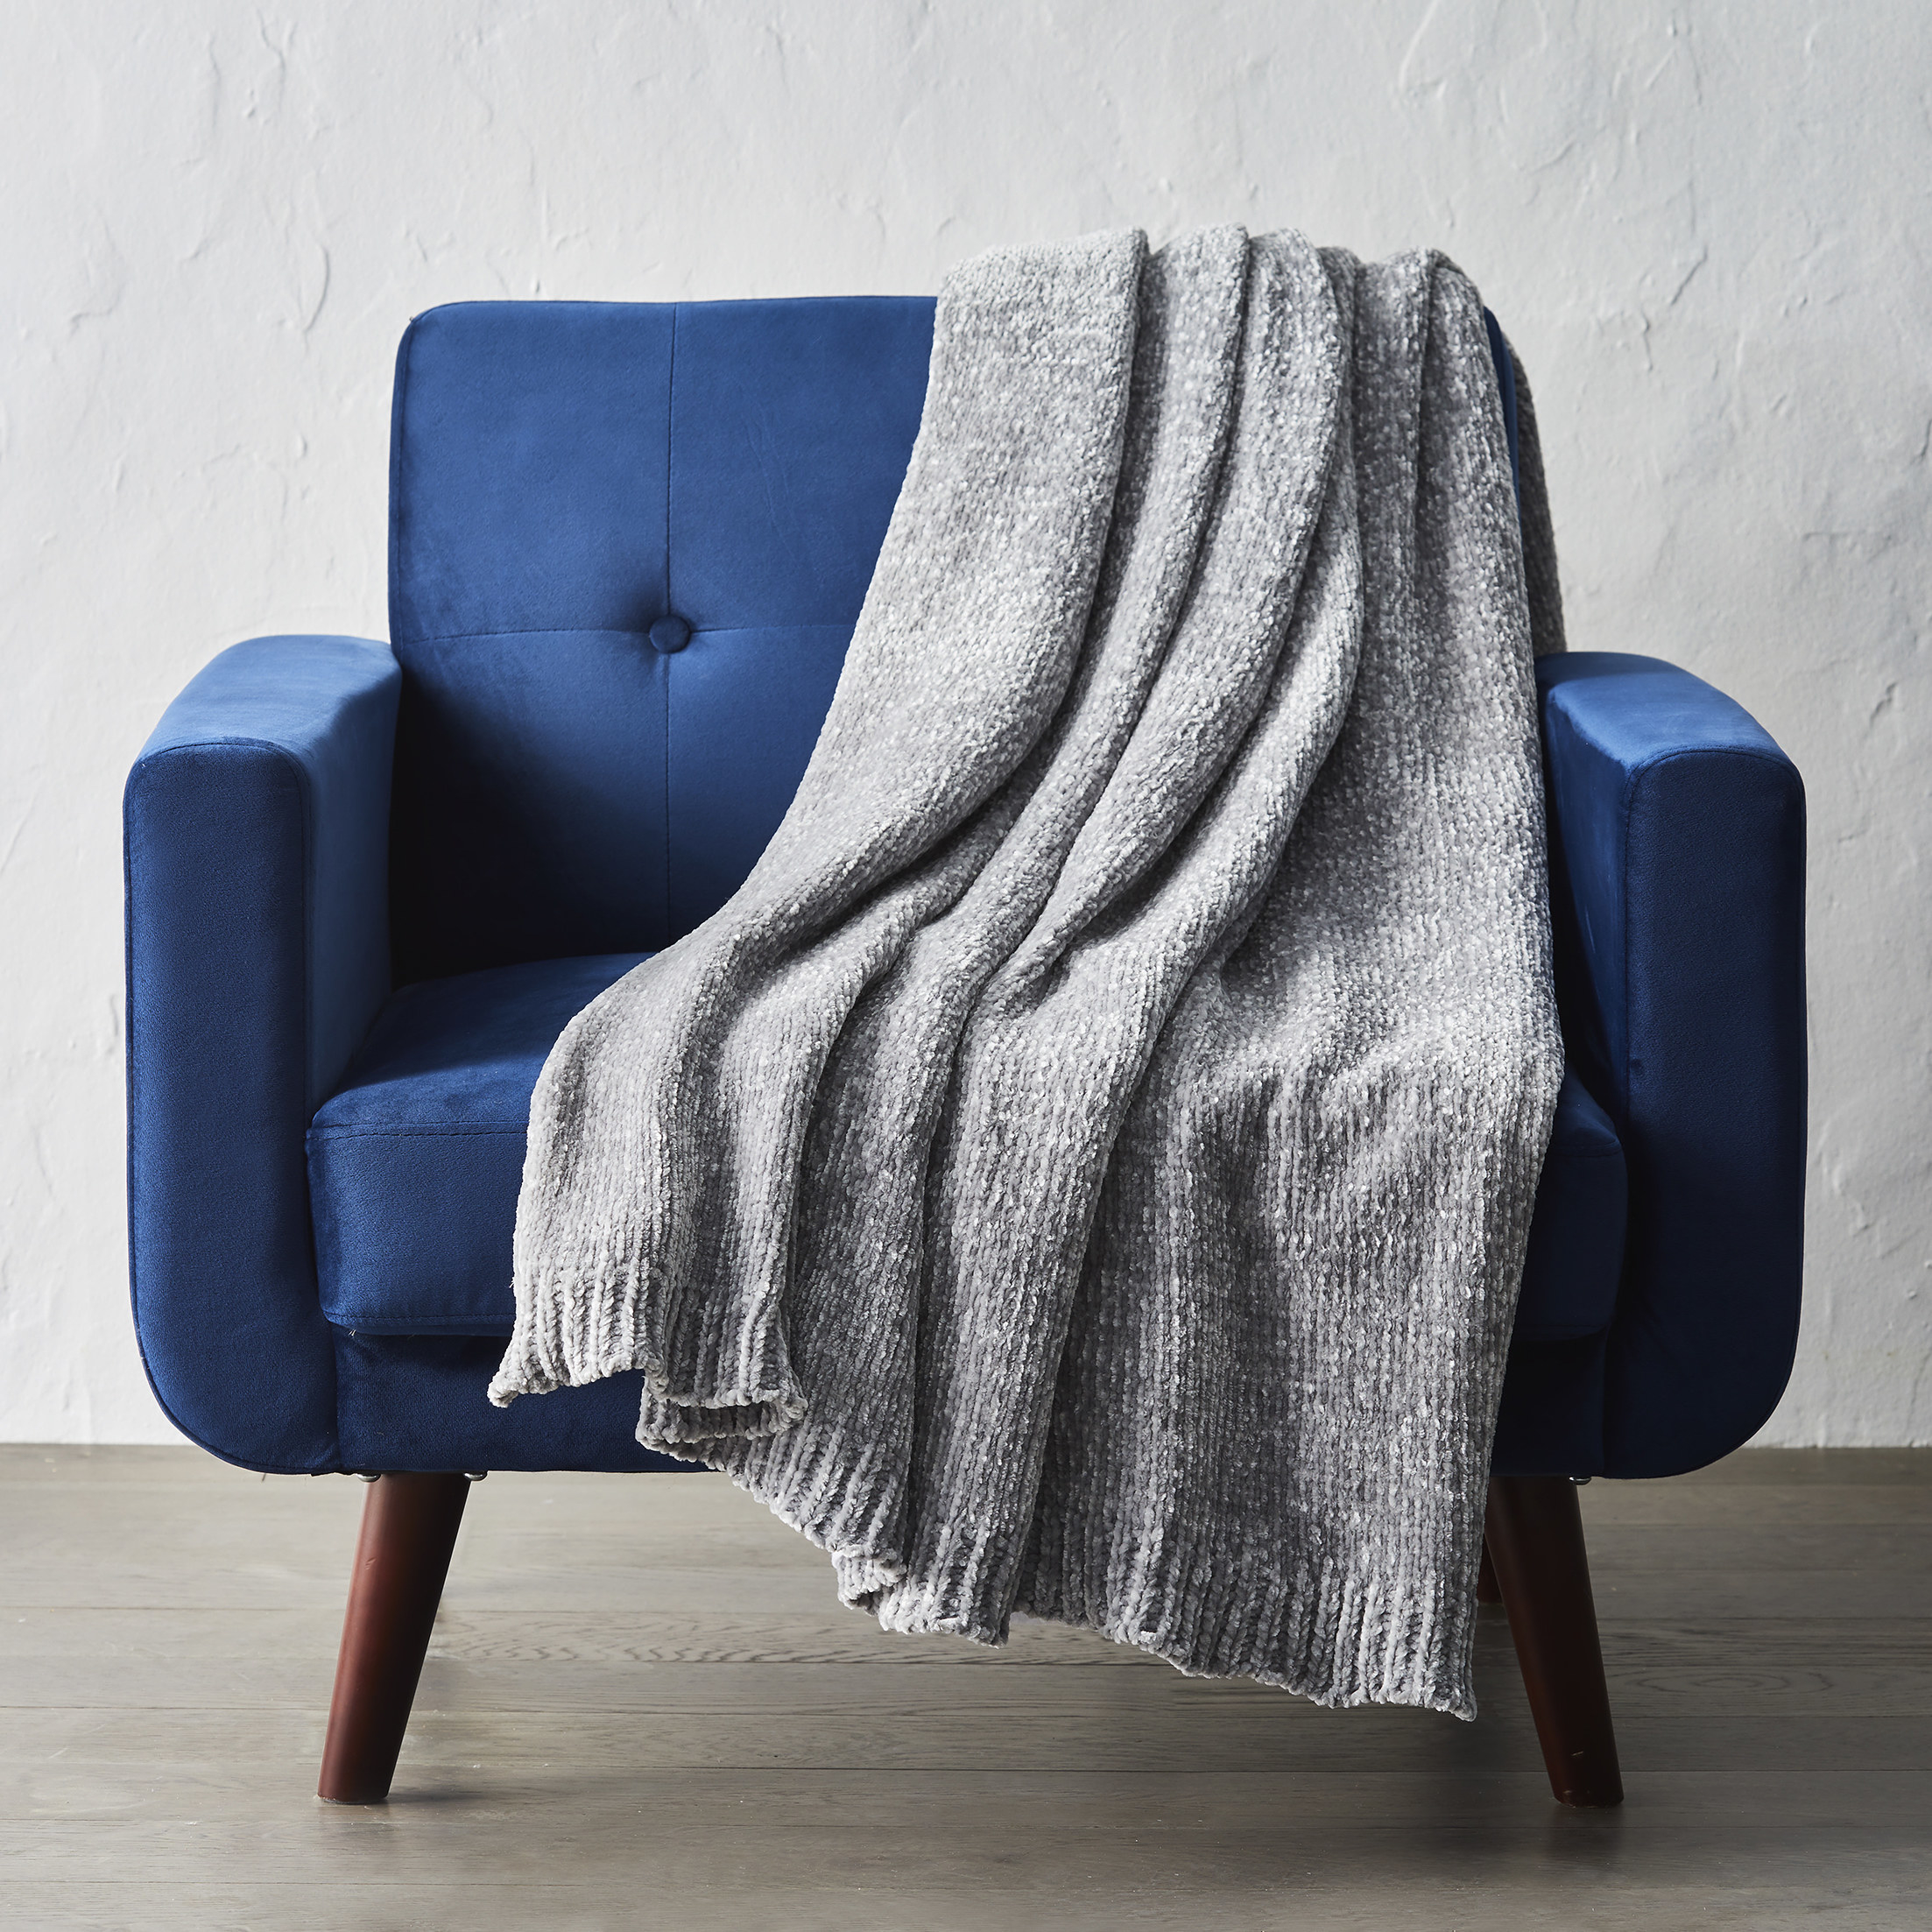 The gray blanket on blue chair